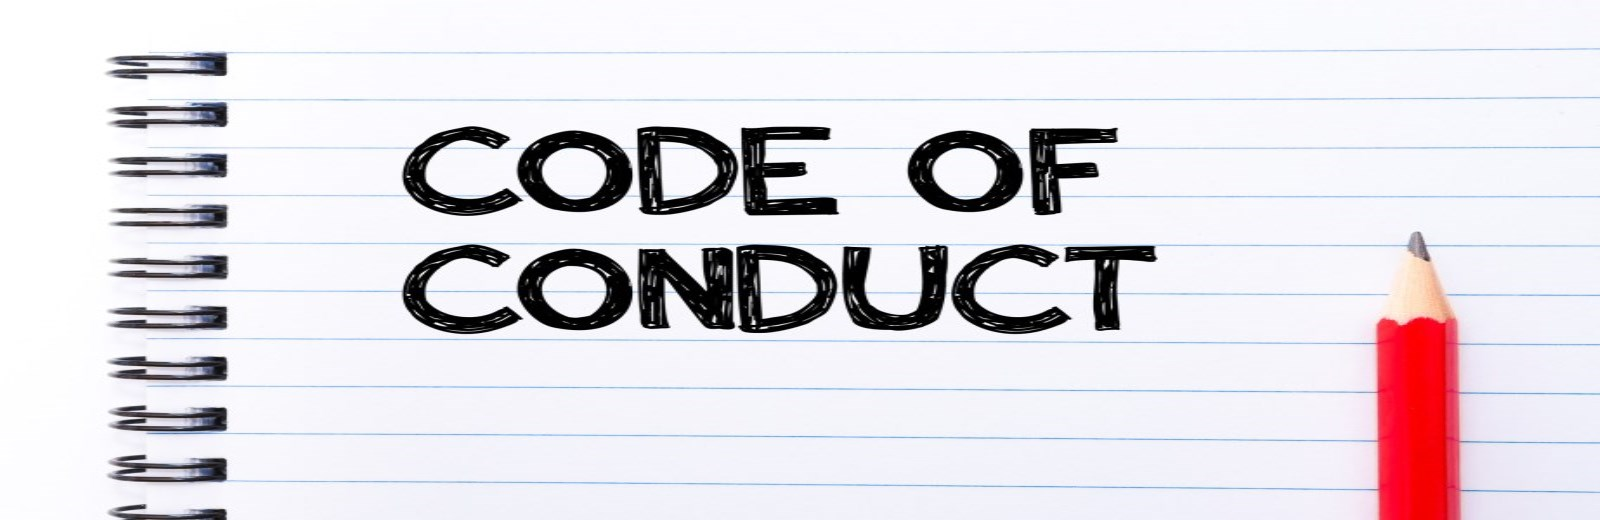 words code of conduct on paper